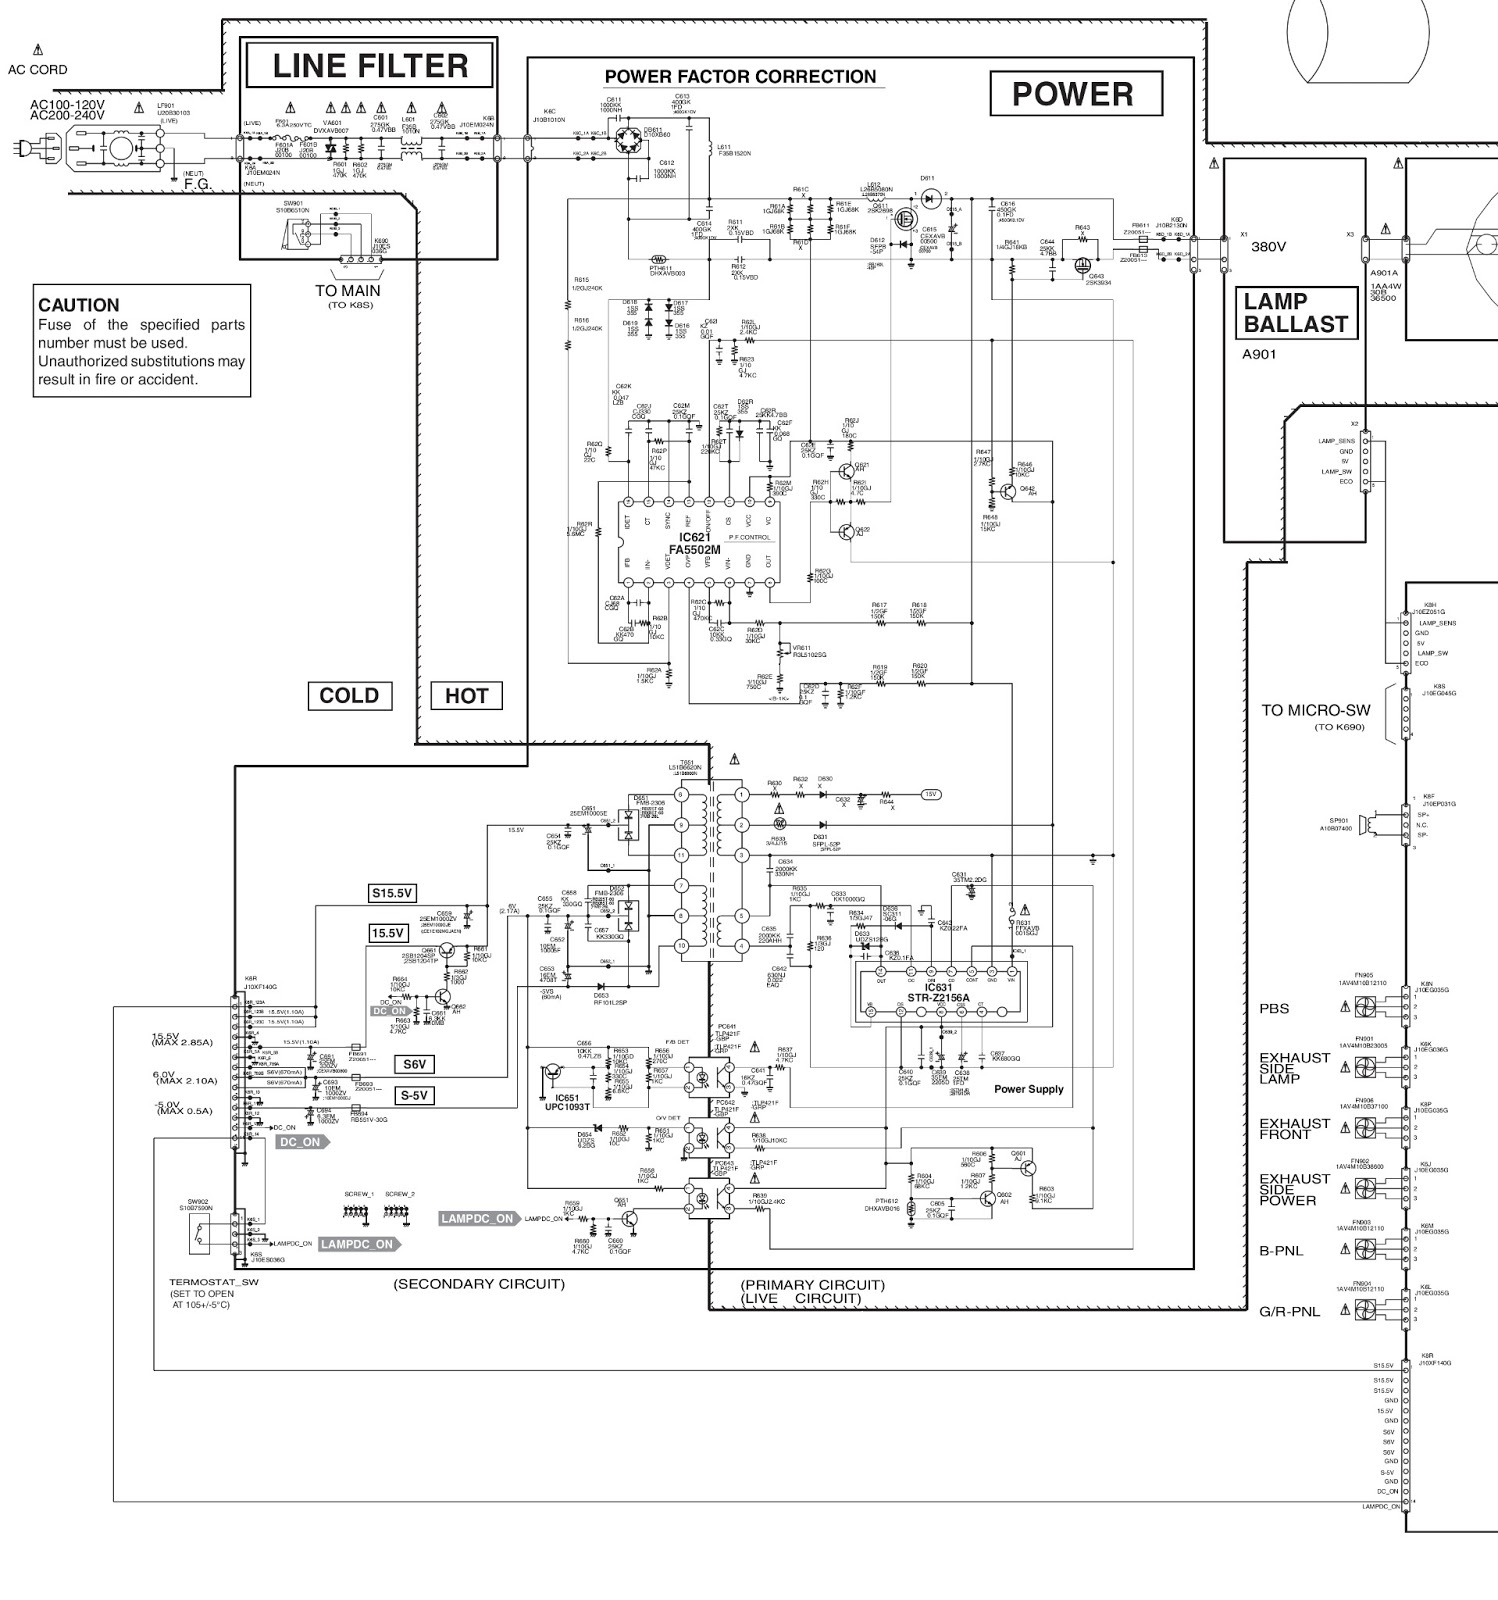 small resolution of sanyo plc xu87 projector power supply schematic diagrampower side a